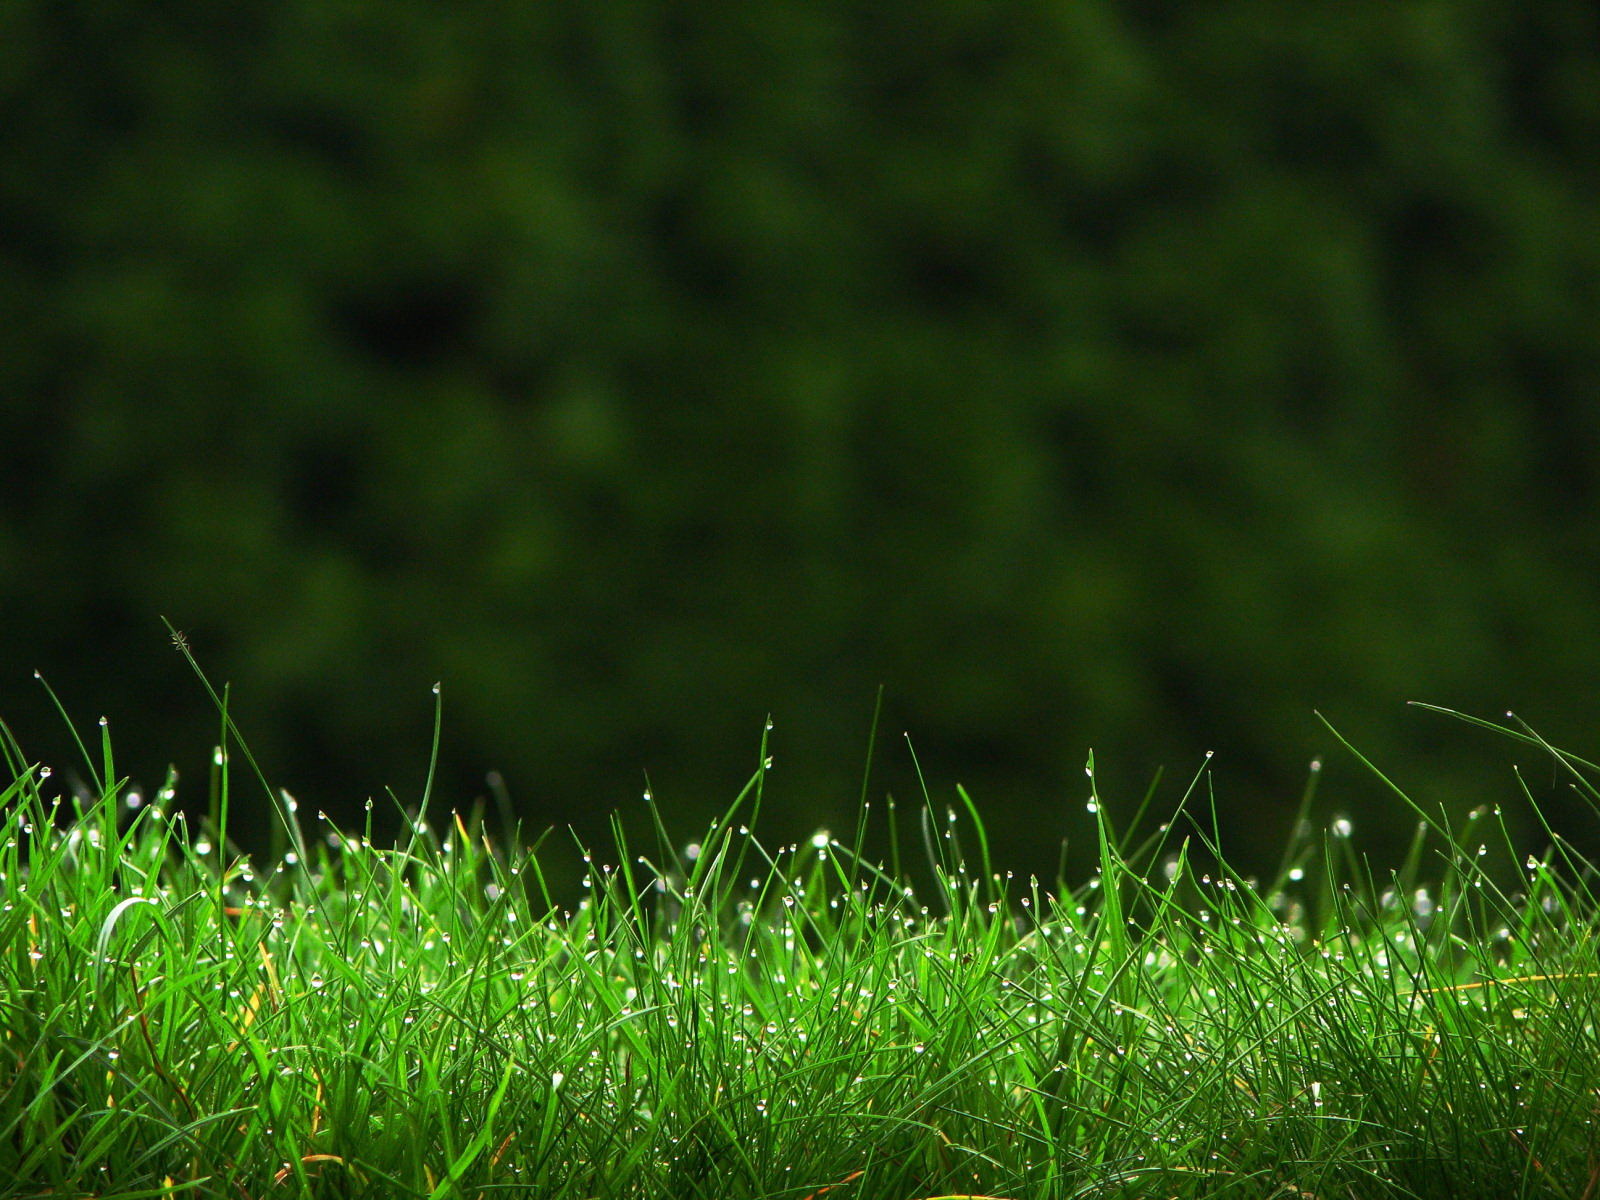 Natural Grass Wallpaper Beautiful Green Morning Grass